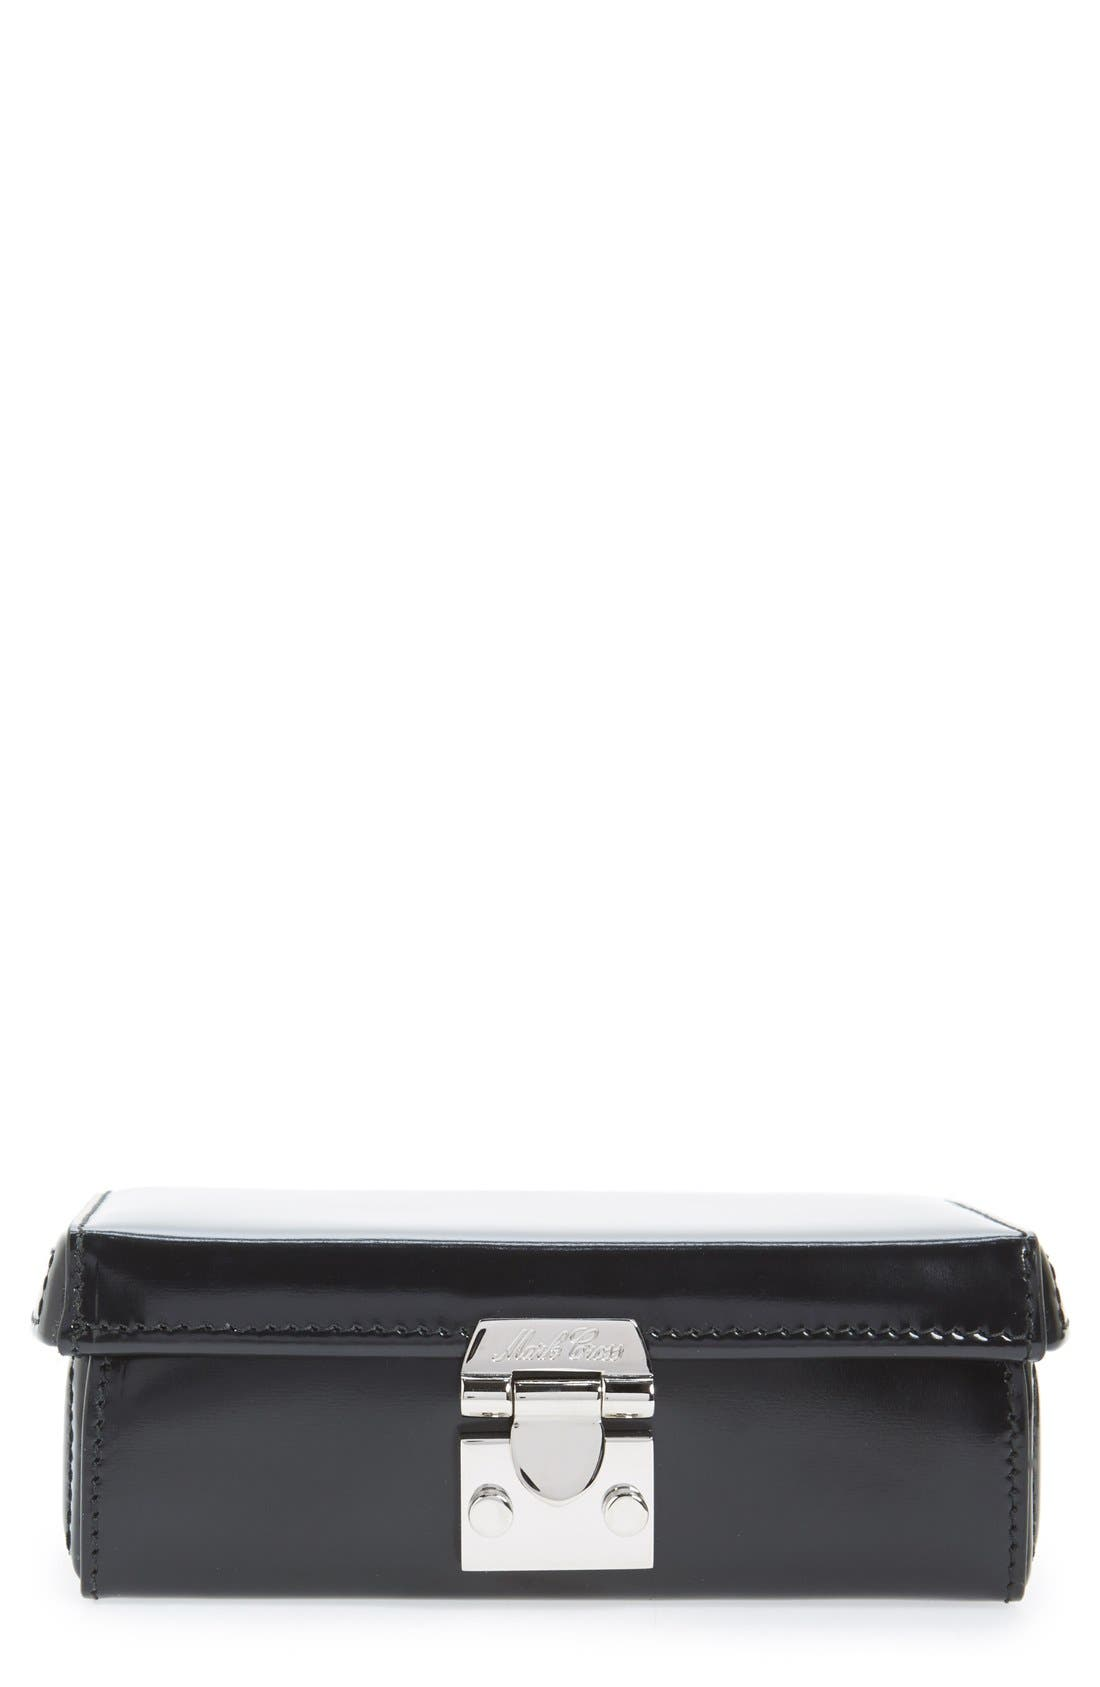 Alternate Image 1 Selected - Mark Cross 'Grace' Spazzolato Leather Clutch